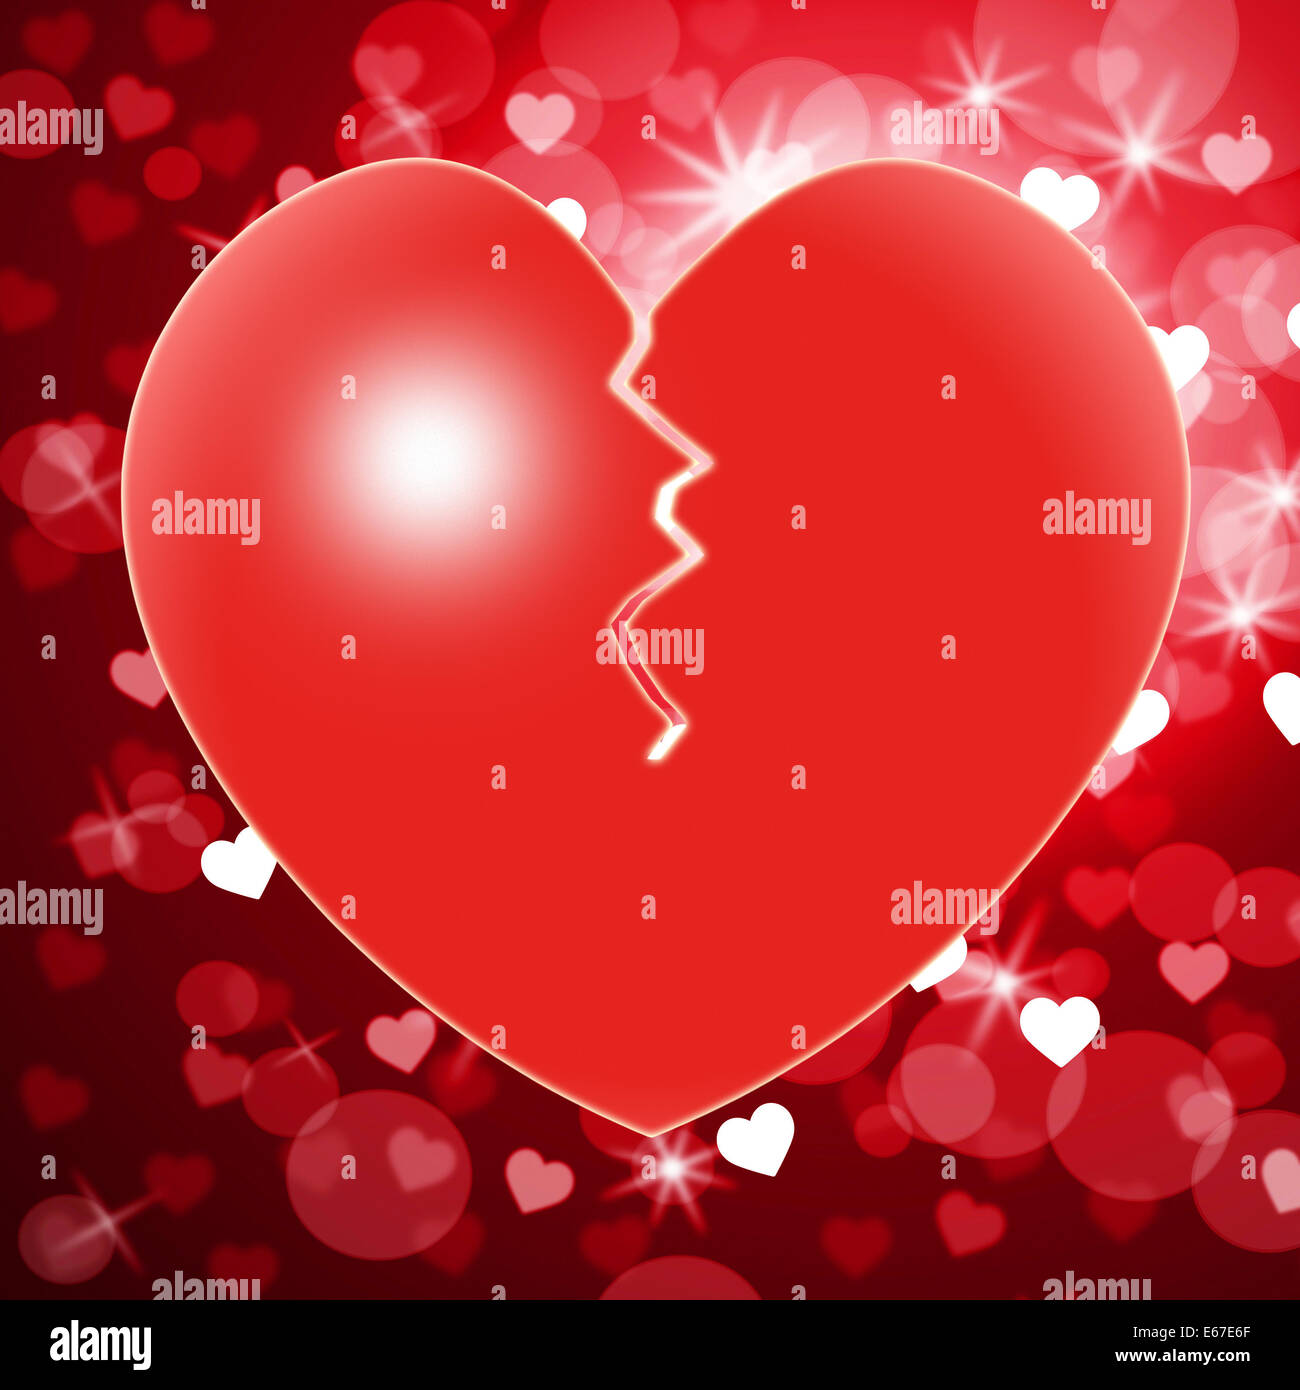 broken heart meaning valentines day and relationship - What Is The Meaning Of Valentines Day